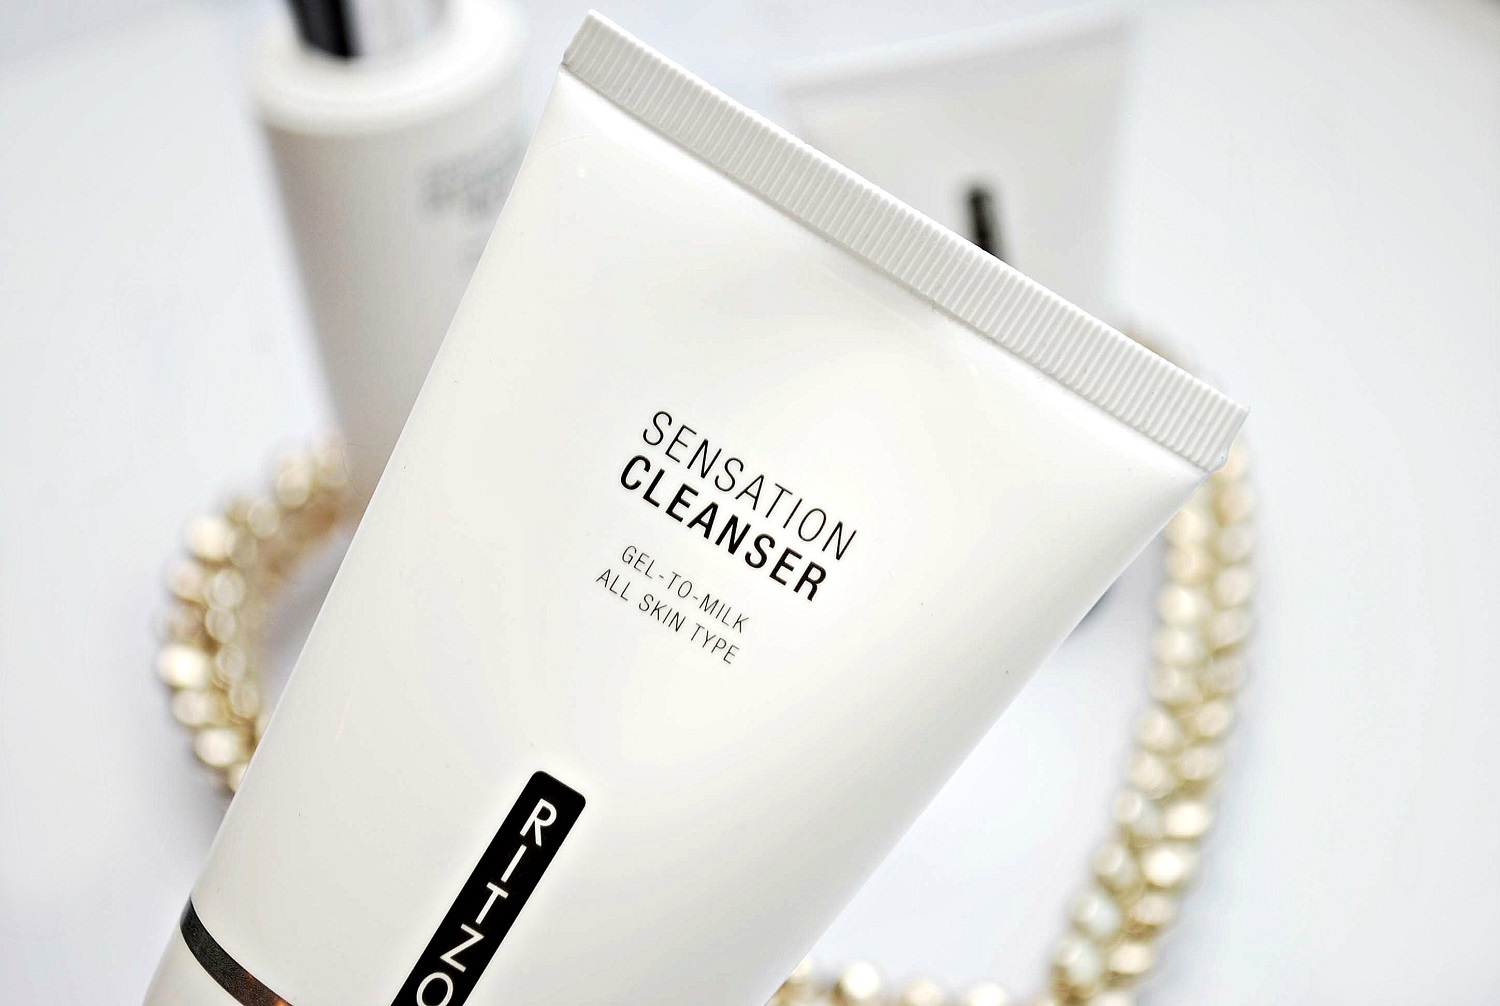 gel to milk cleanser ritzo review